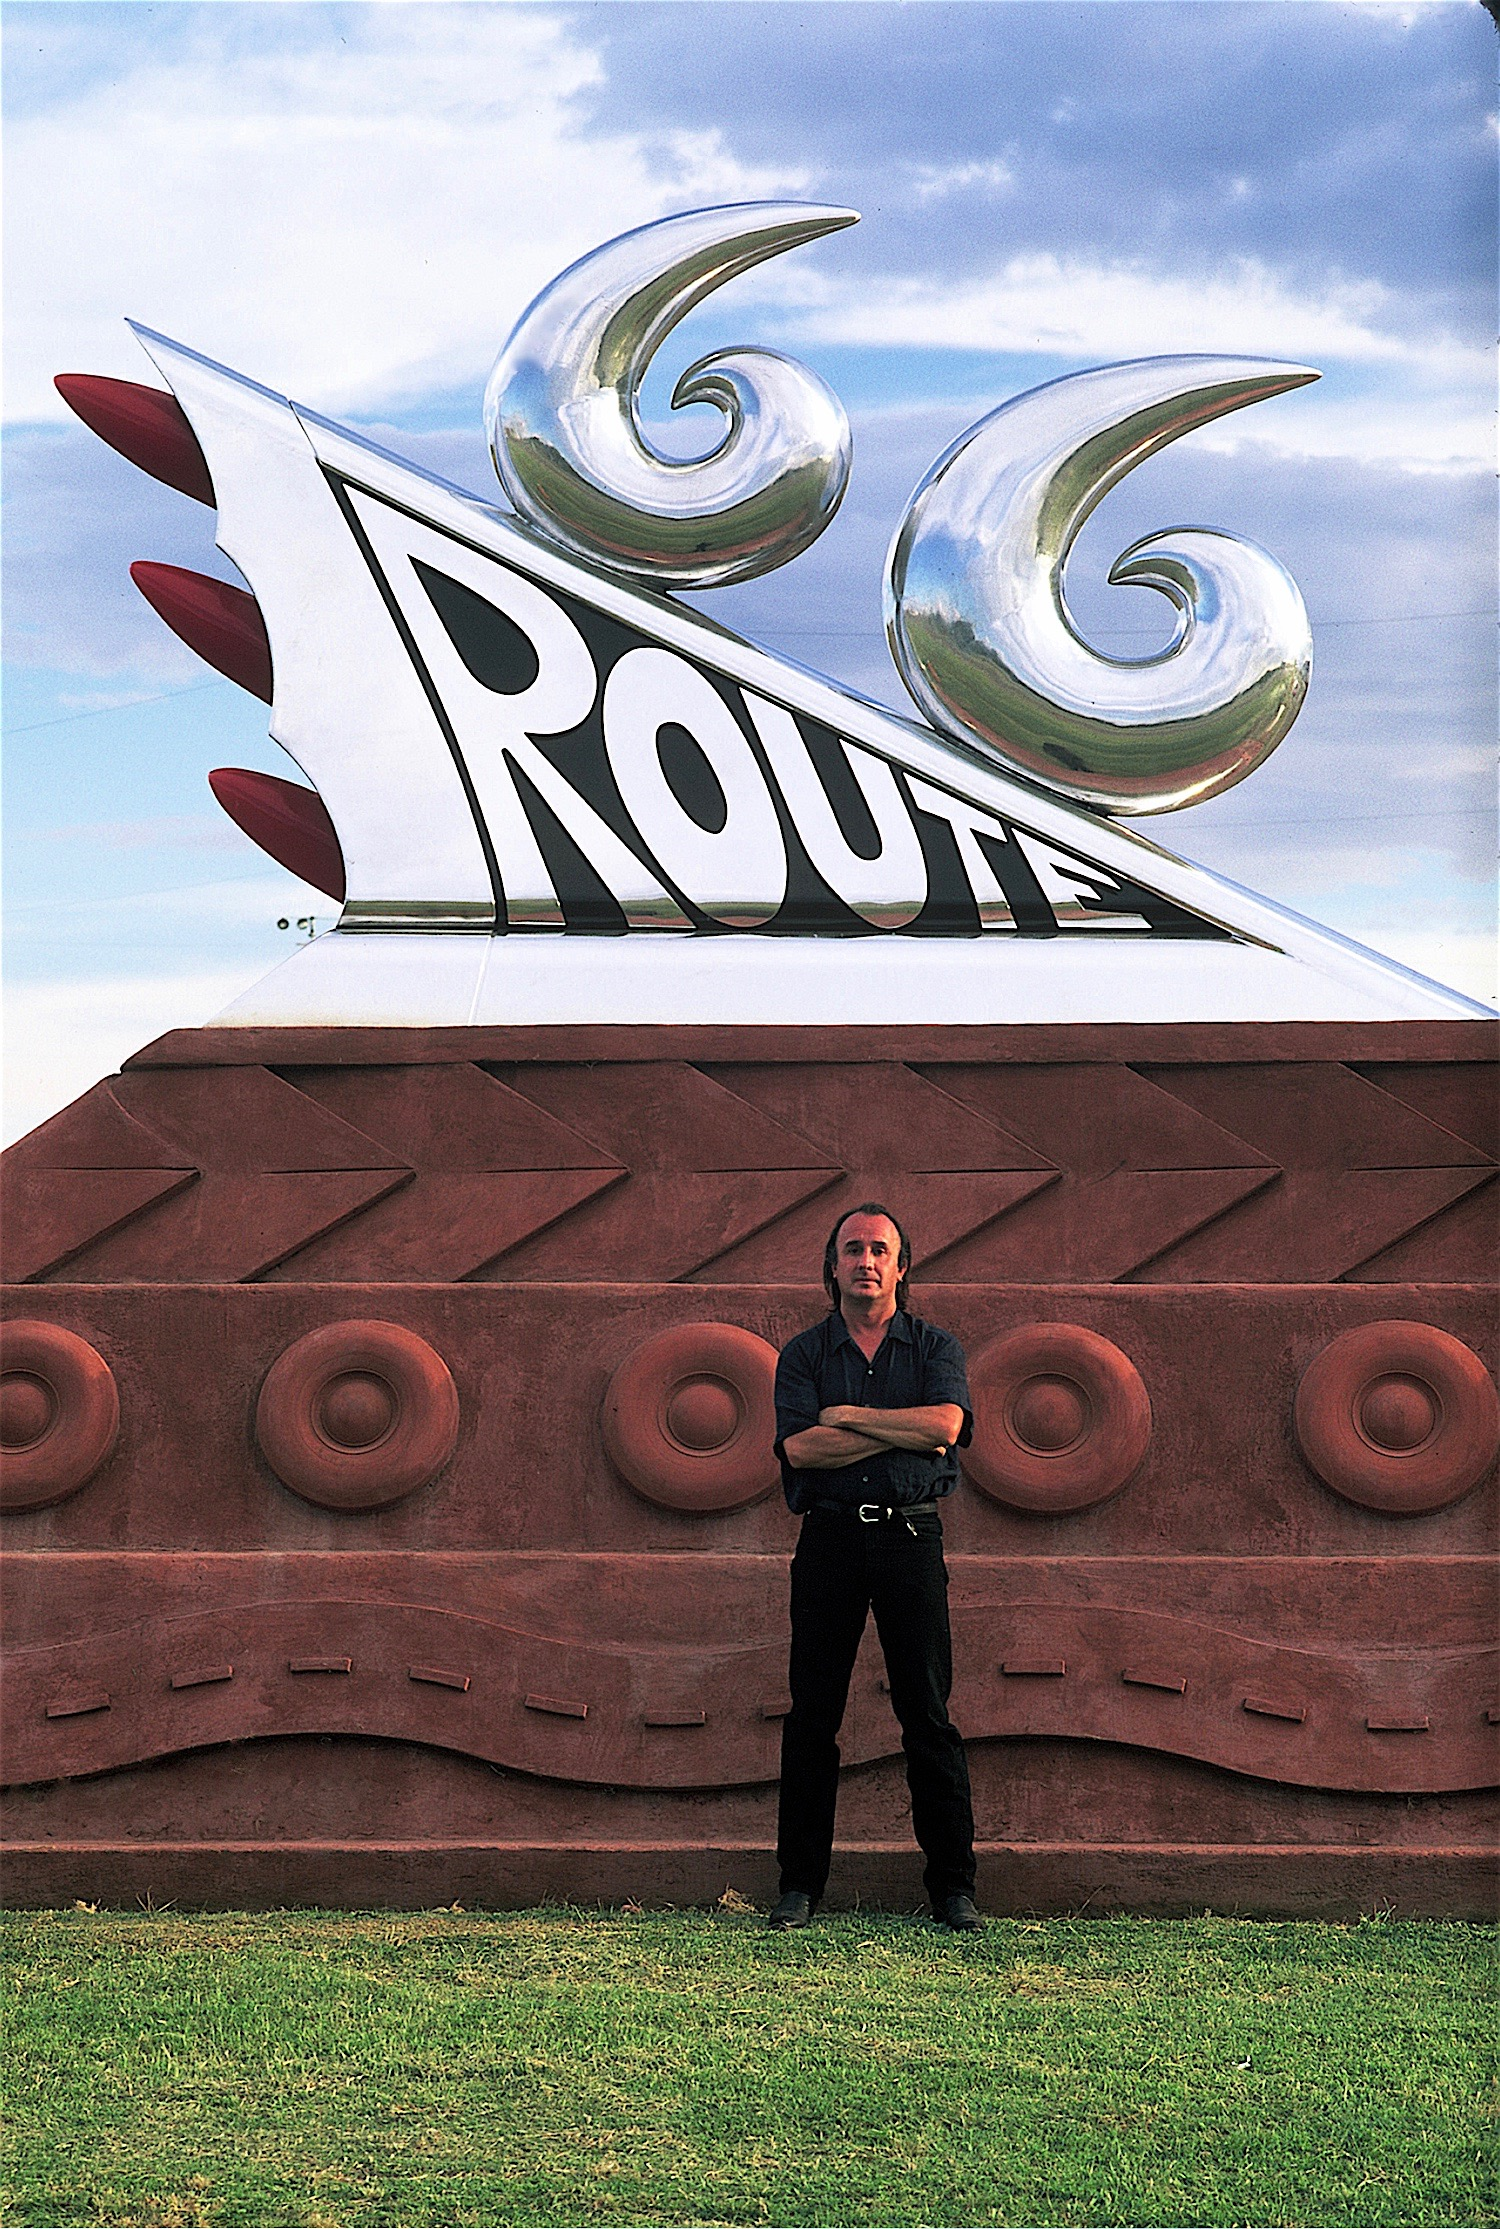 """Thomas Coffin - Artist Thomas Coffin and his Route 66 Monument - """"Roadside Attraction"""", commissioned by New Mexico Arts Commission and New Mexico Highway Department - Tucumcari, New Mexico, 1997"""